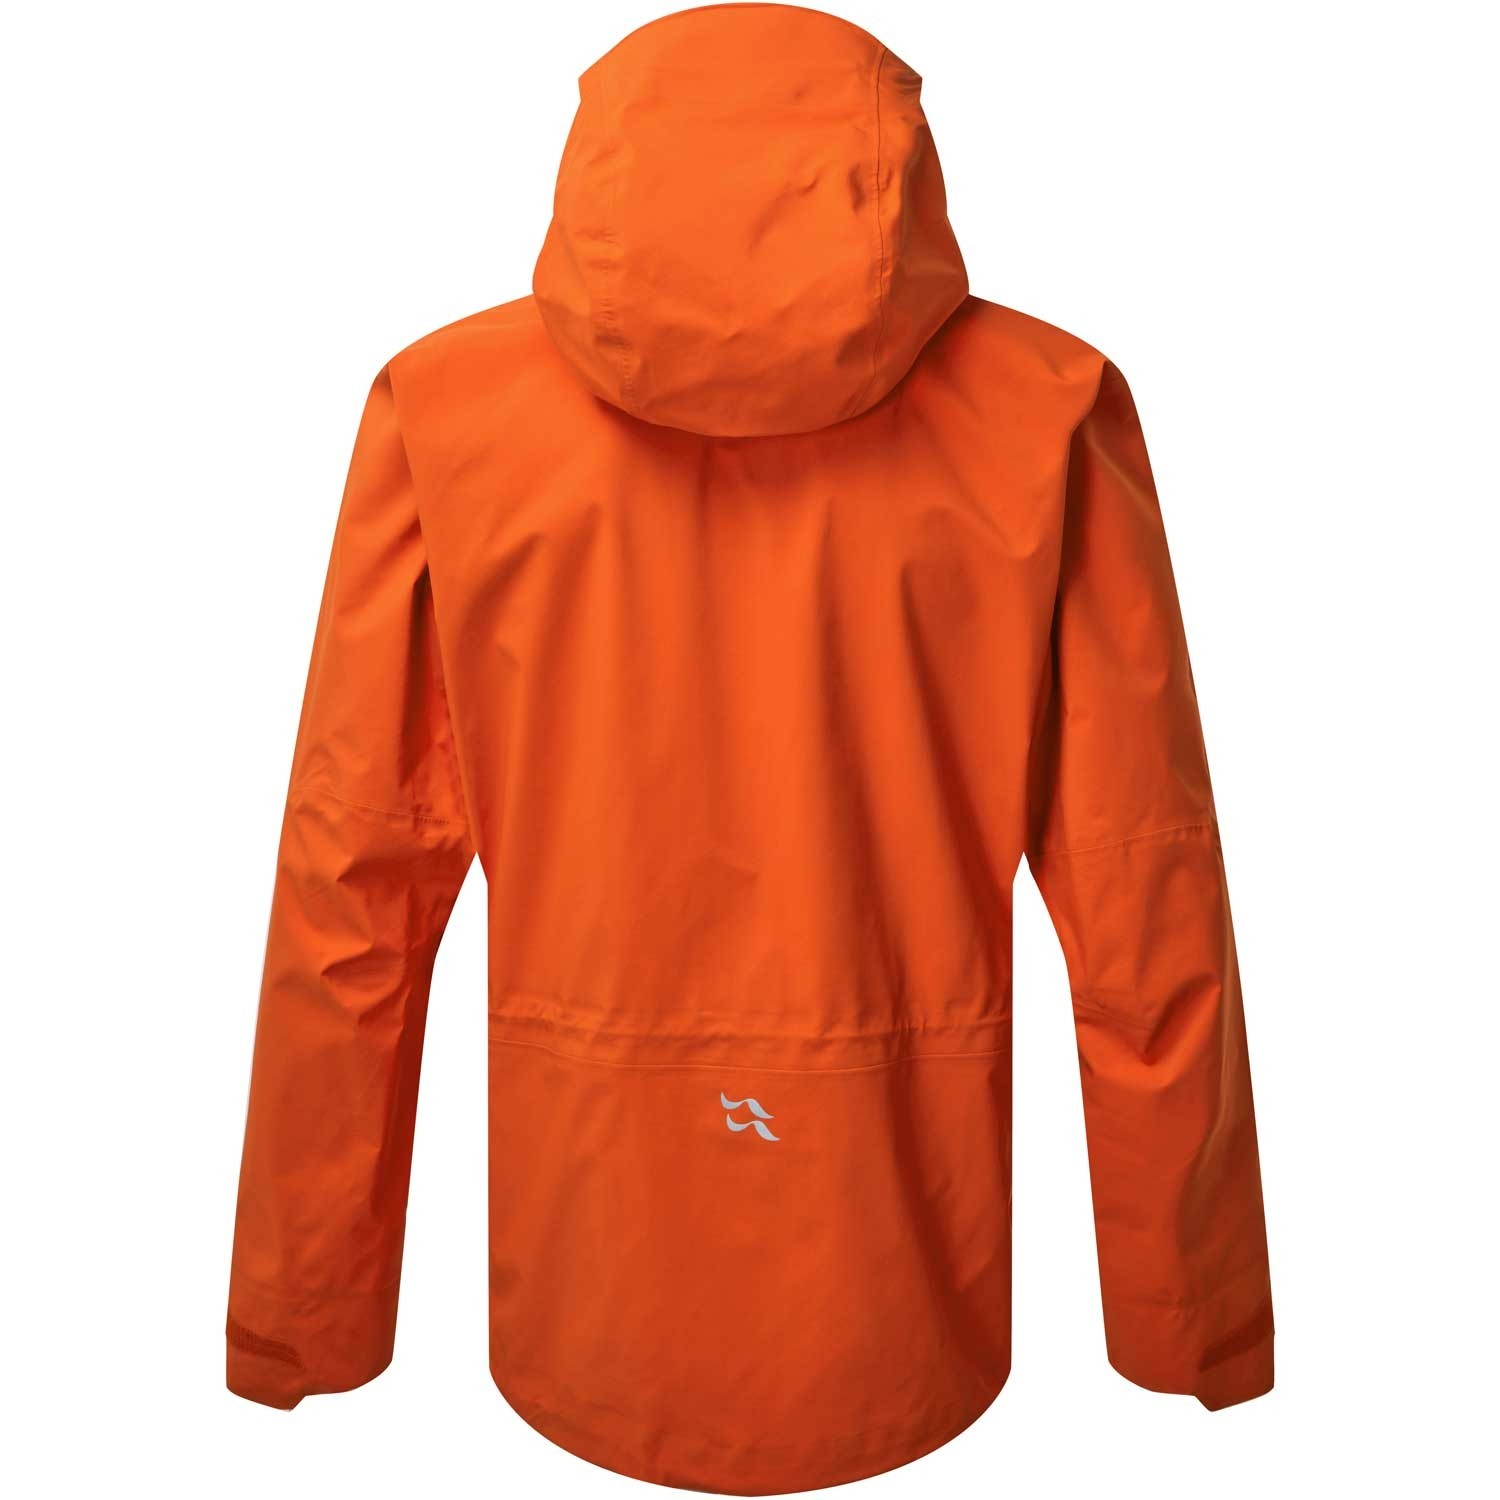 Rab Latok GTX Waterproof Jacket - Men's - Firecracker